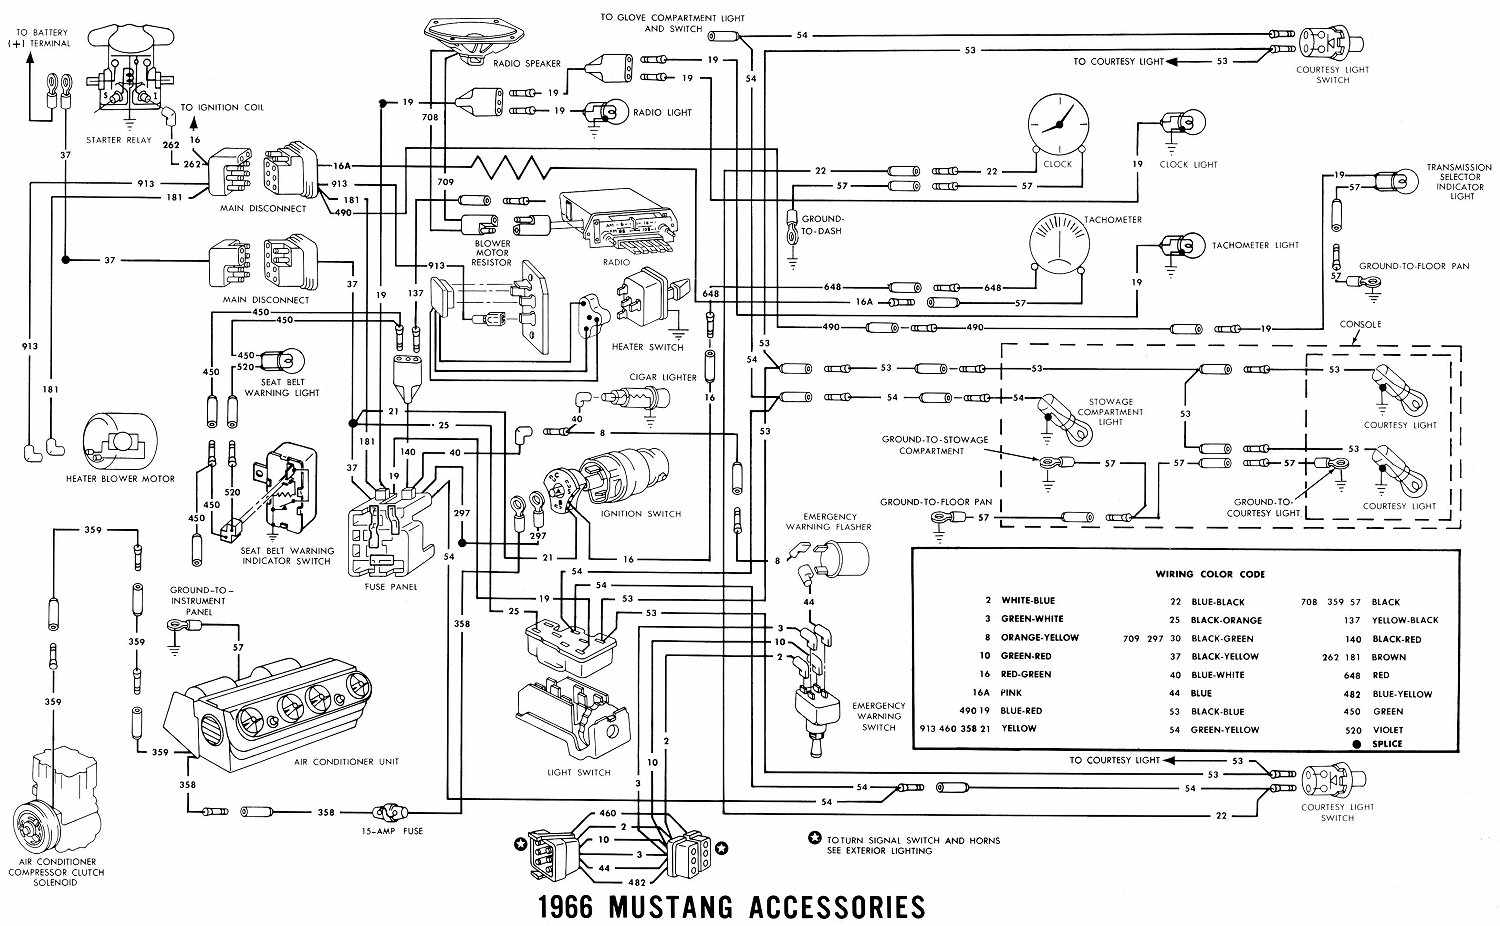 1966 mustang neutral safety switch wiring diagram